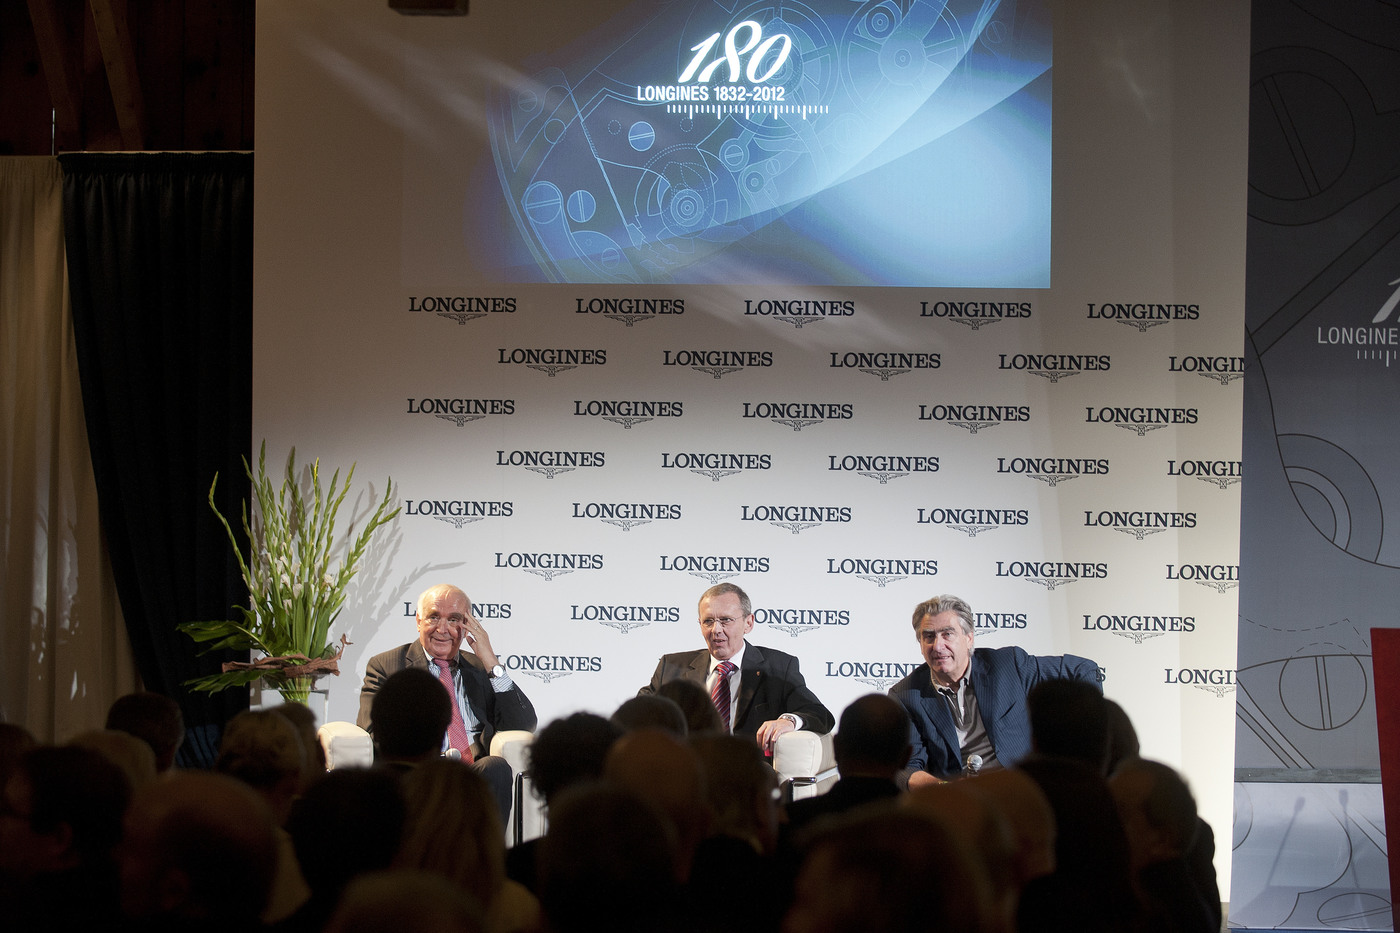 Longines Corporate Event: Longines celebrates its 180th anniversary in Saint-Imier! 9